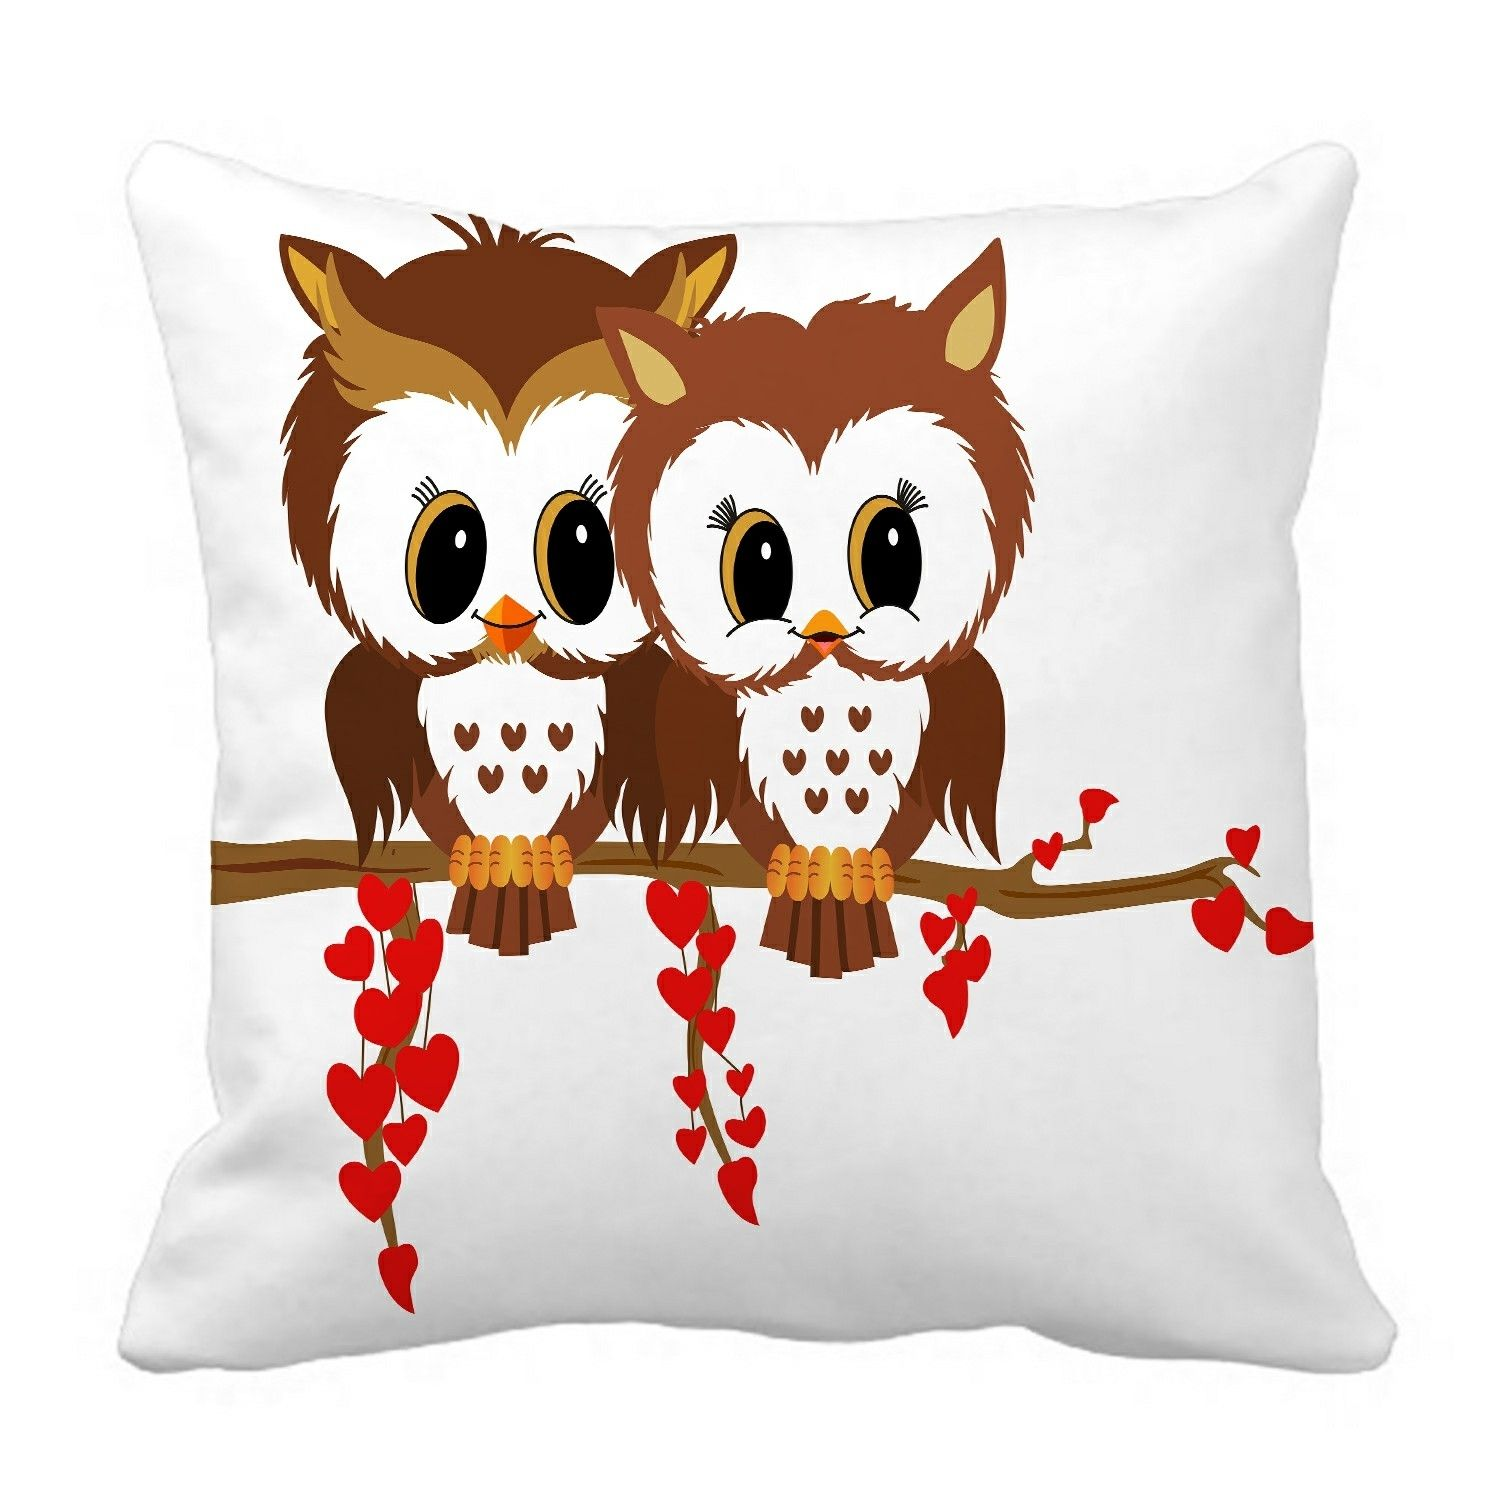 Valentine owls Pillow?Case?Pillow?Cover?Cushion?Cover